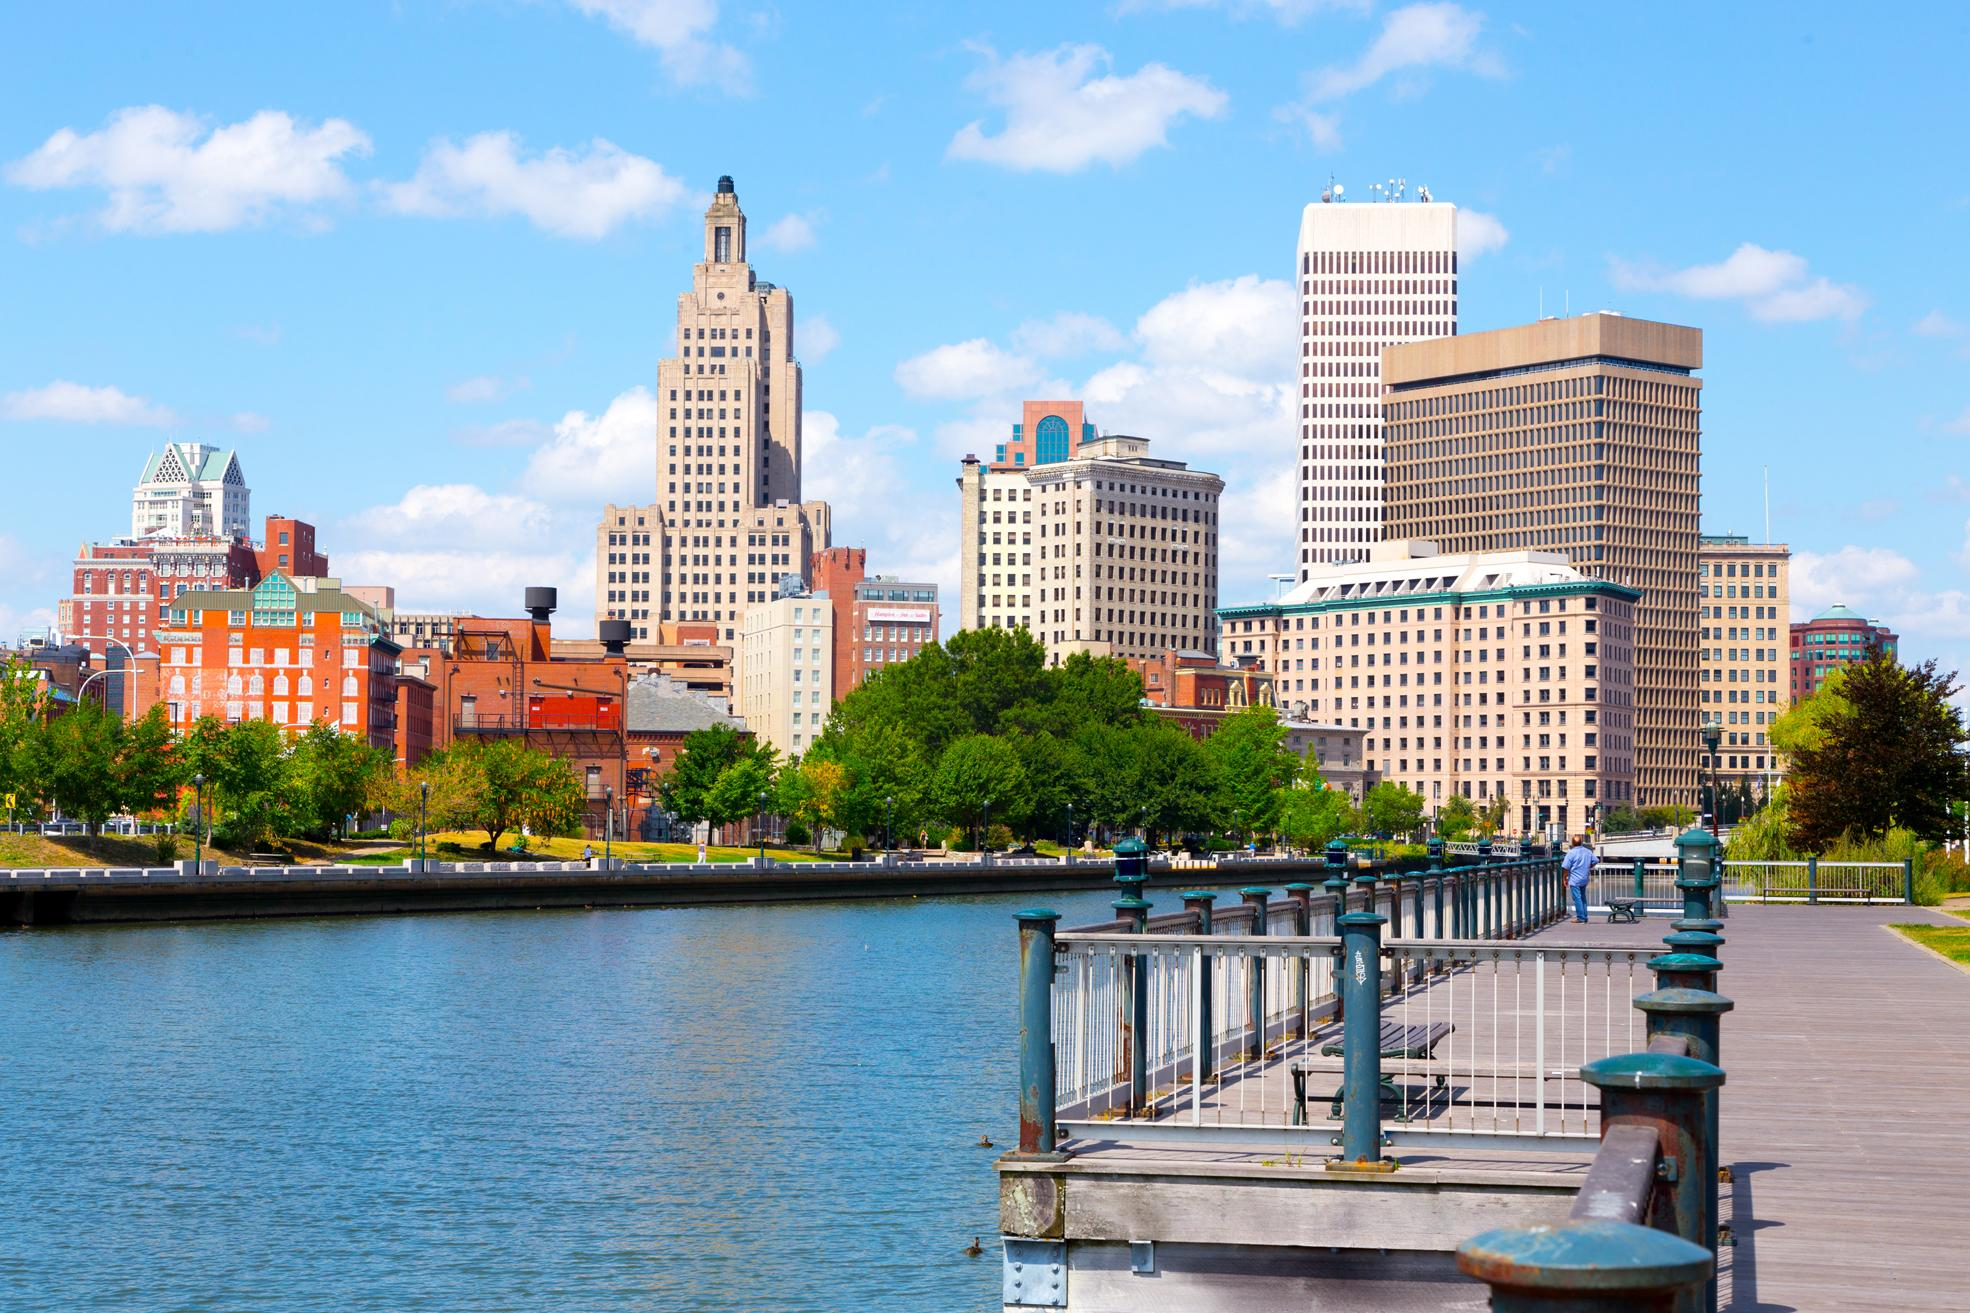 Often overshadowed by nearby Boston, Rhode Island's capital city of Providence has plenty to offer visitors – and is not afraid to let you know. From unique arts programming to outstanding food, here are five reasons to check out this scenic and friendly city. (Image: N.Millard/GoProvidence.com)